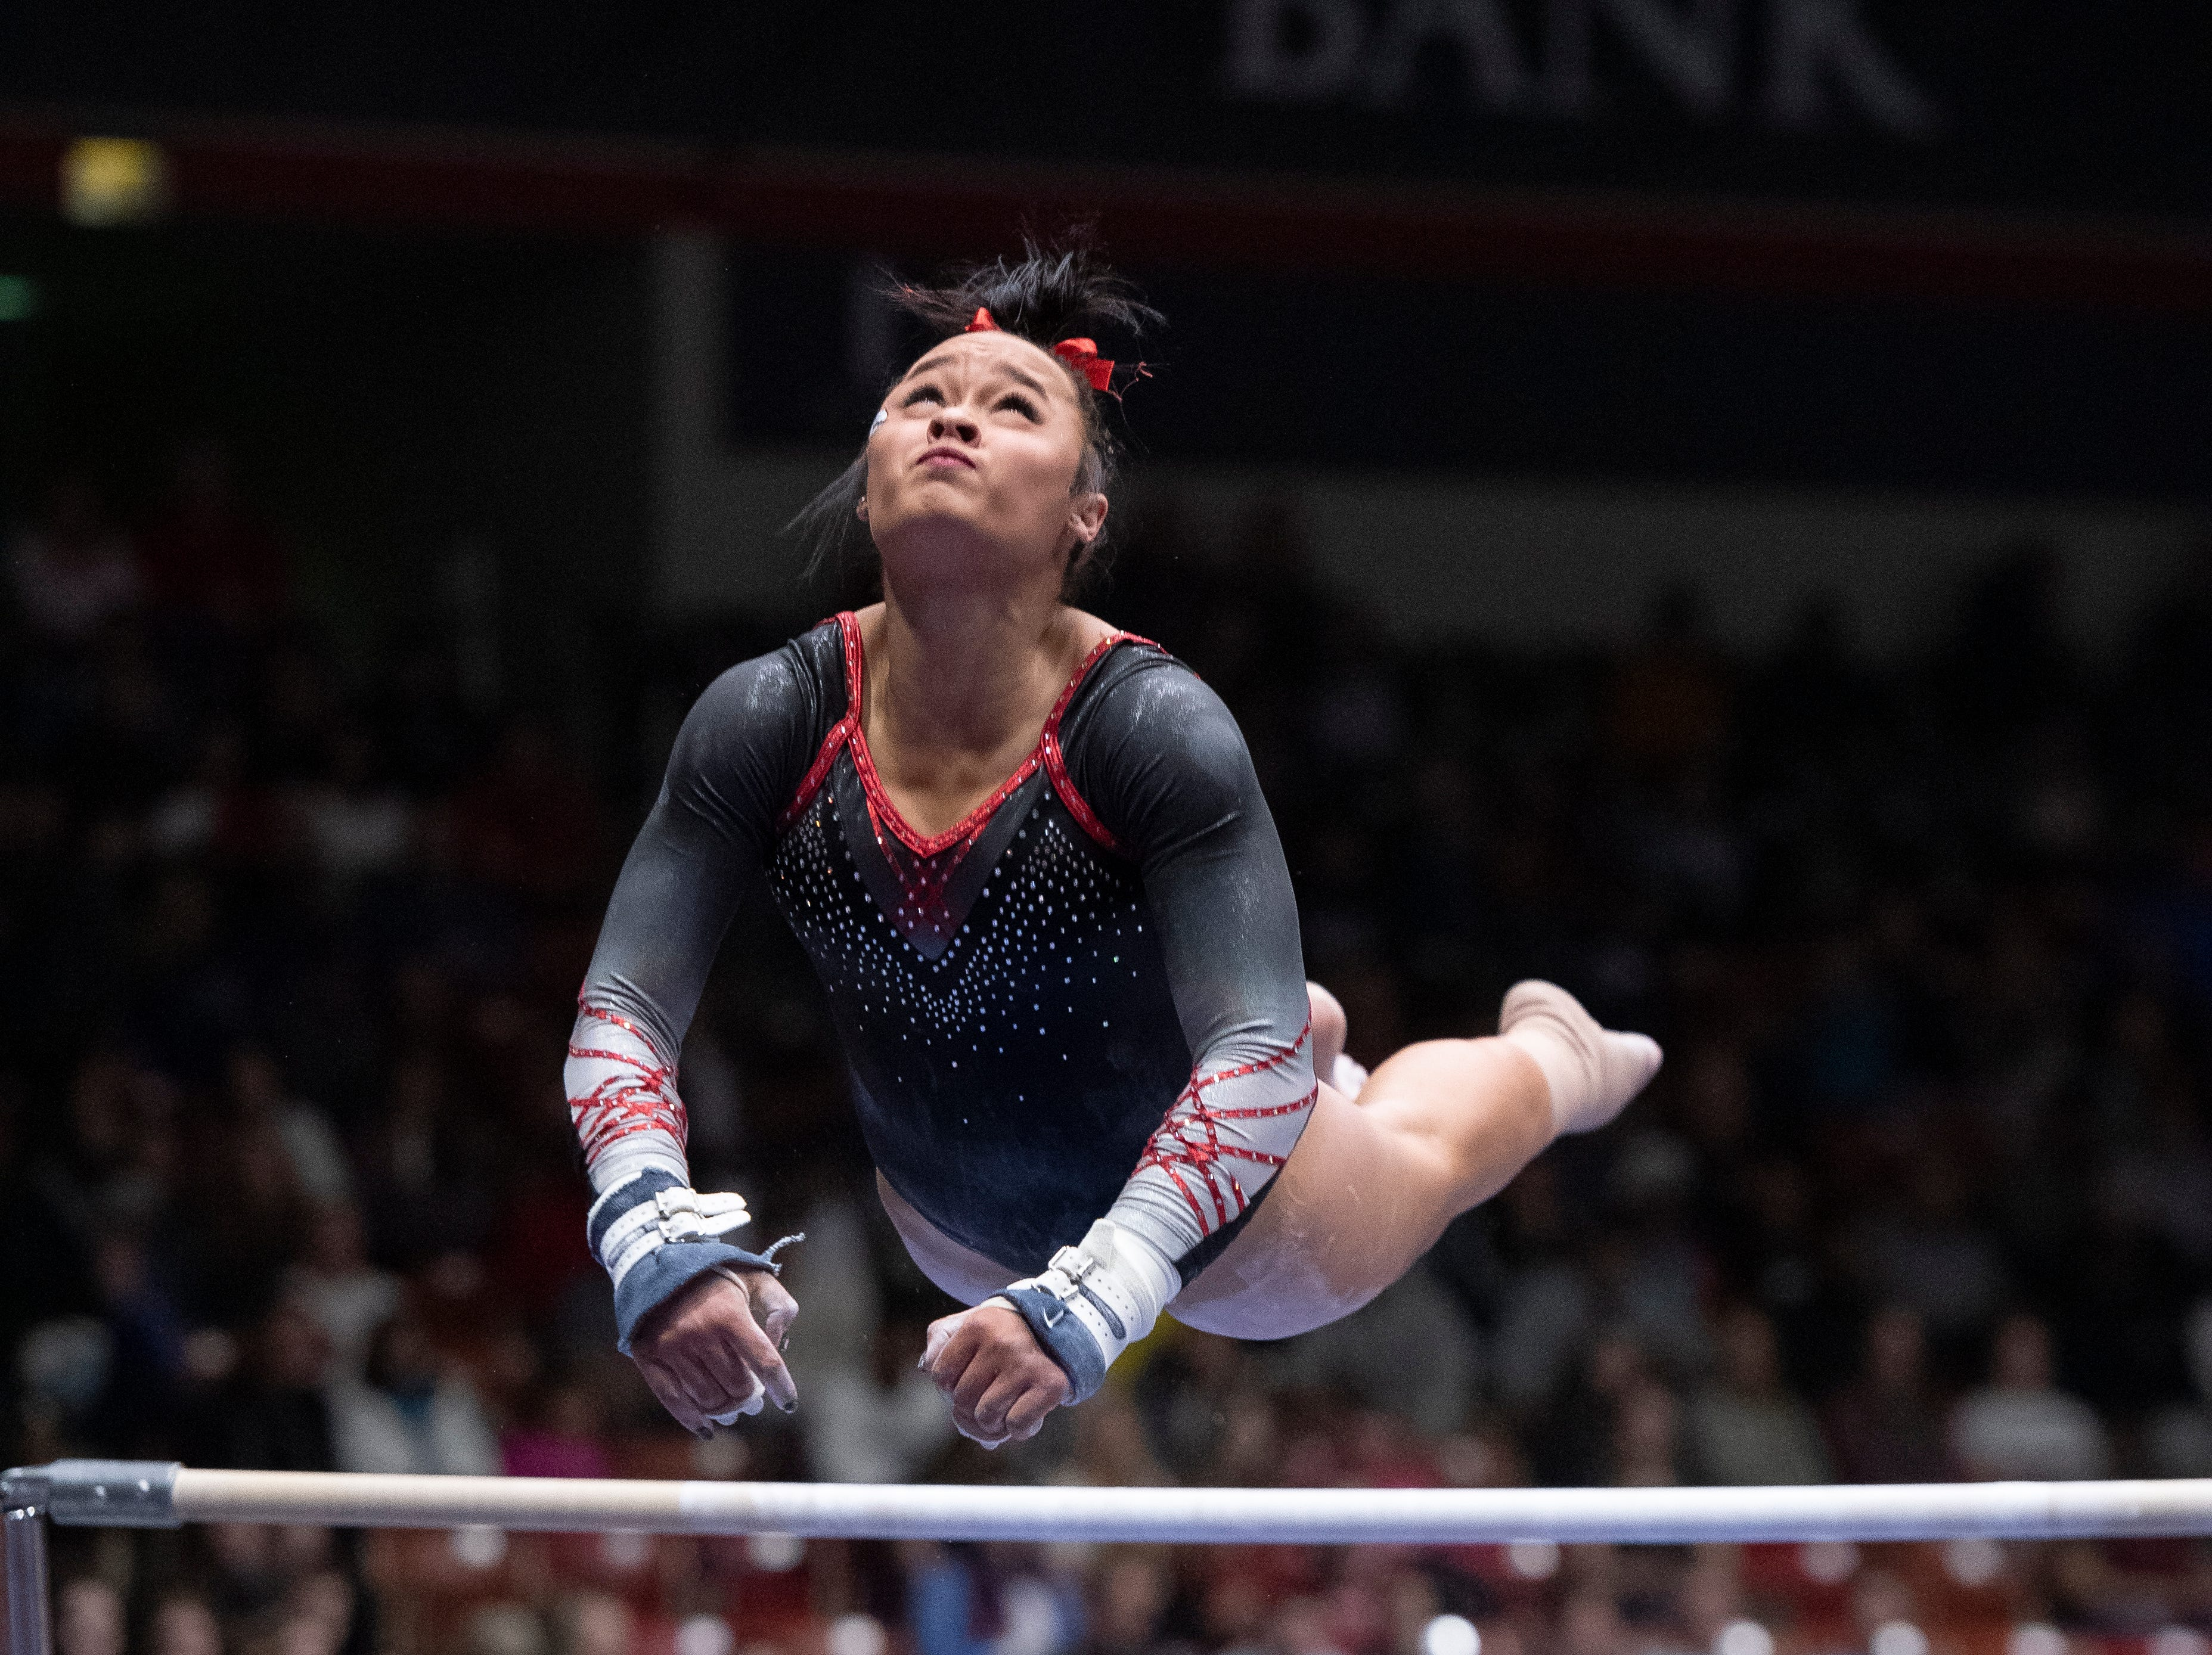 Southern Utah University freshman Karley McClain competes against Boise State at the America First Event Center Friday, January 18, 2019.